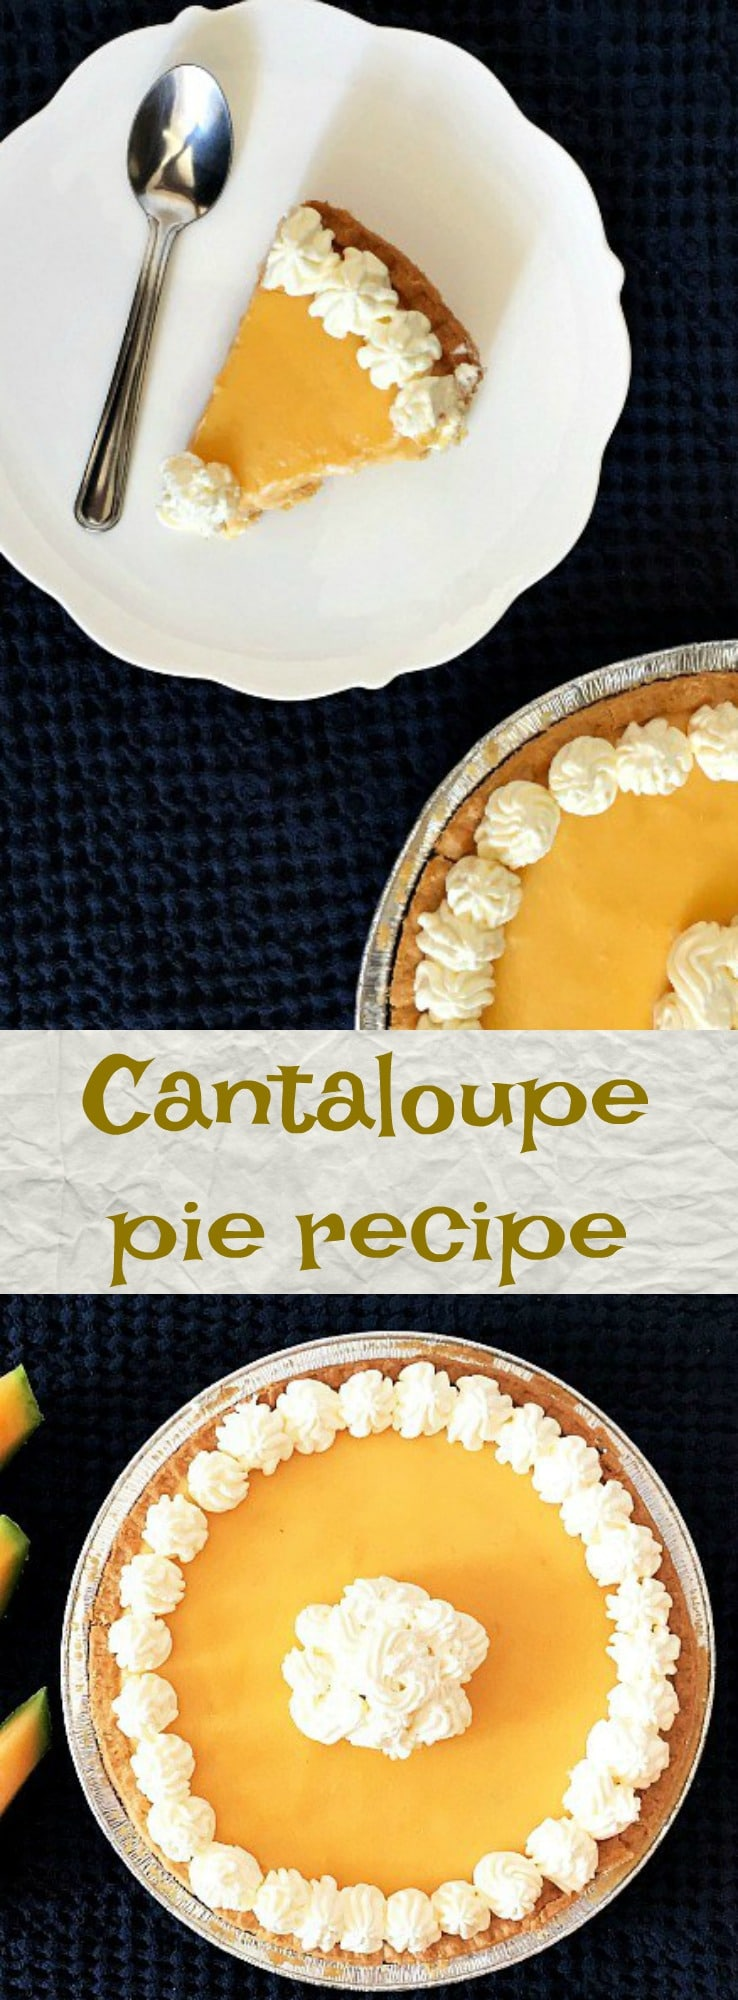 Cantaloupe pie recipe, a refreshing dessert perfect for a warm, sunny day. Top it with whipped cream for the ultimate treat experience.